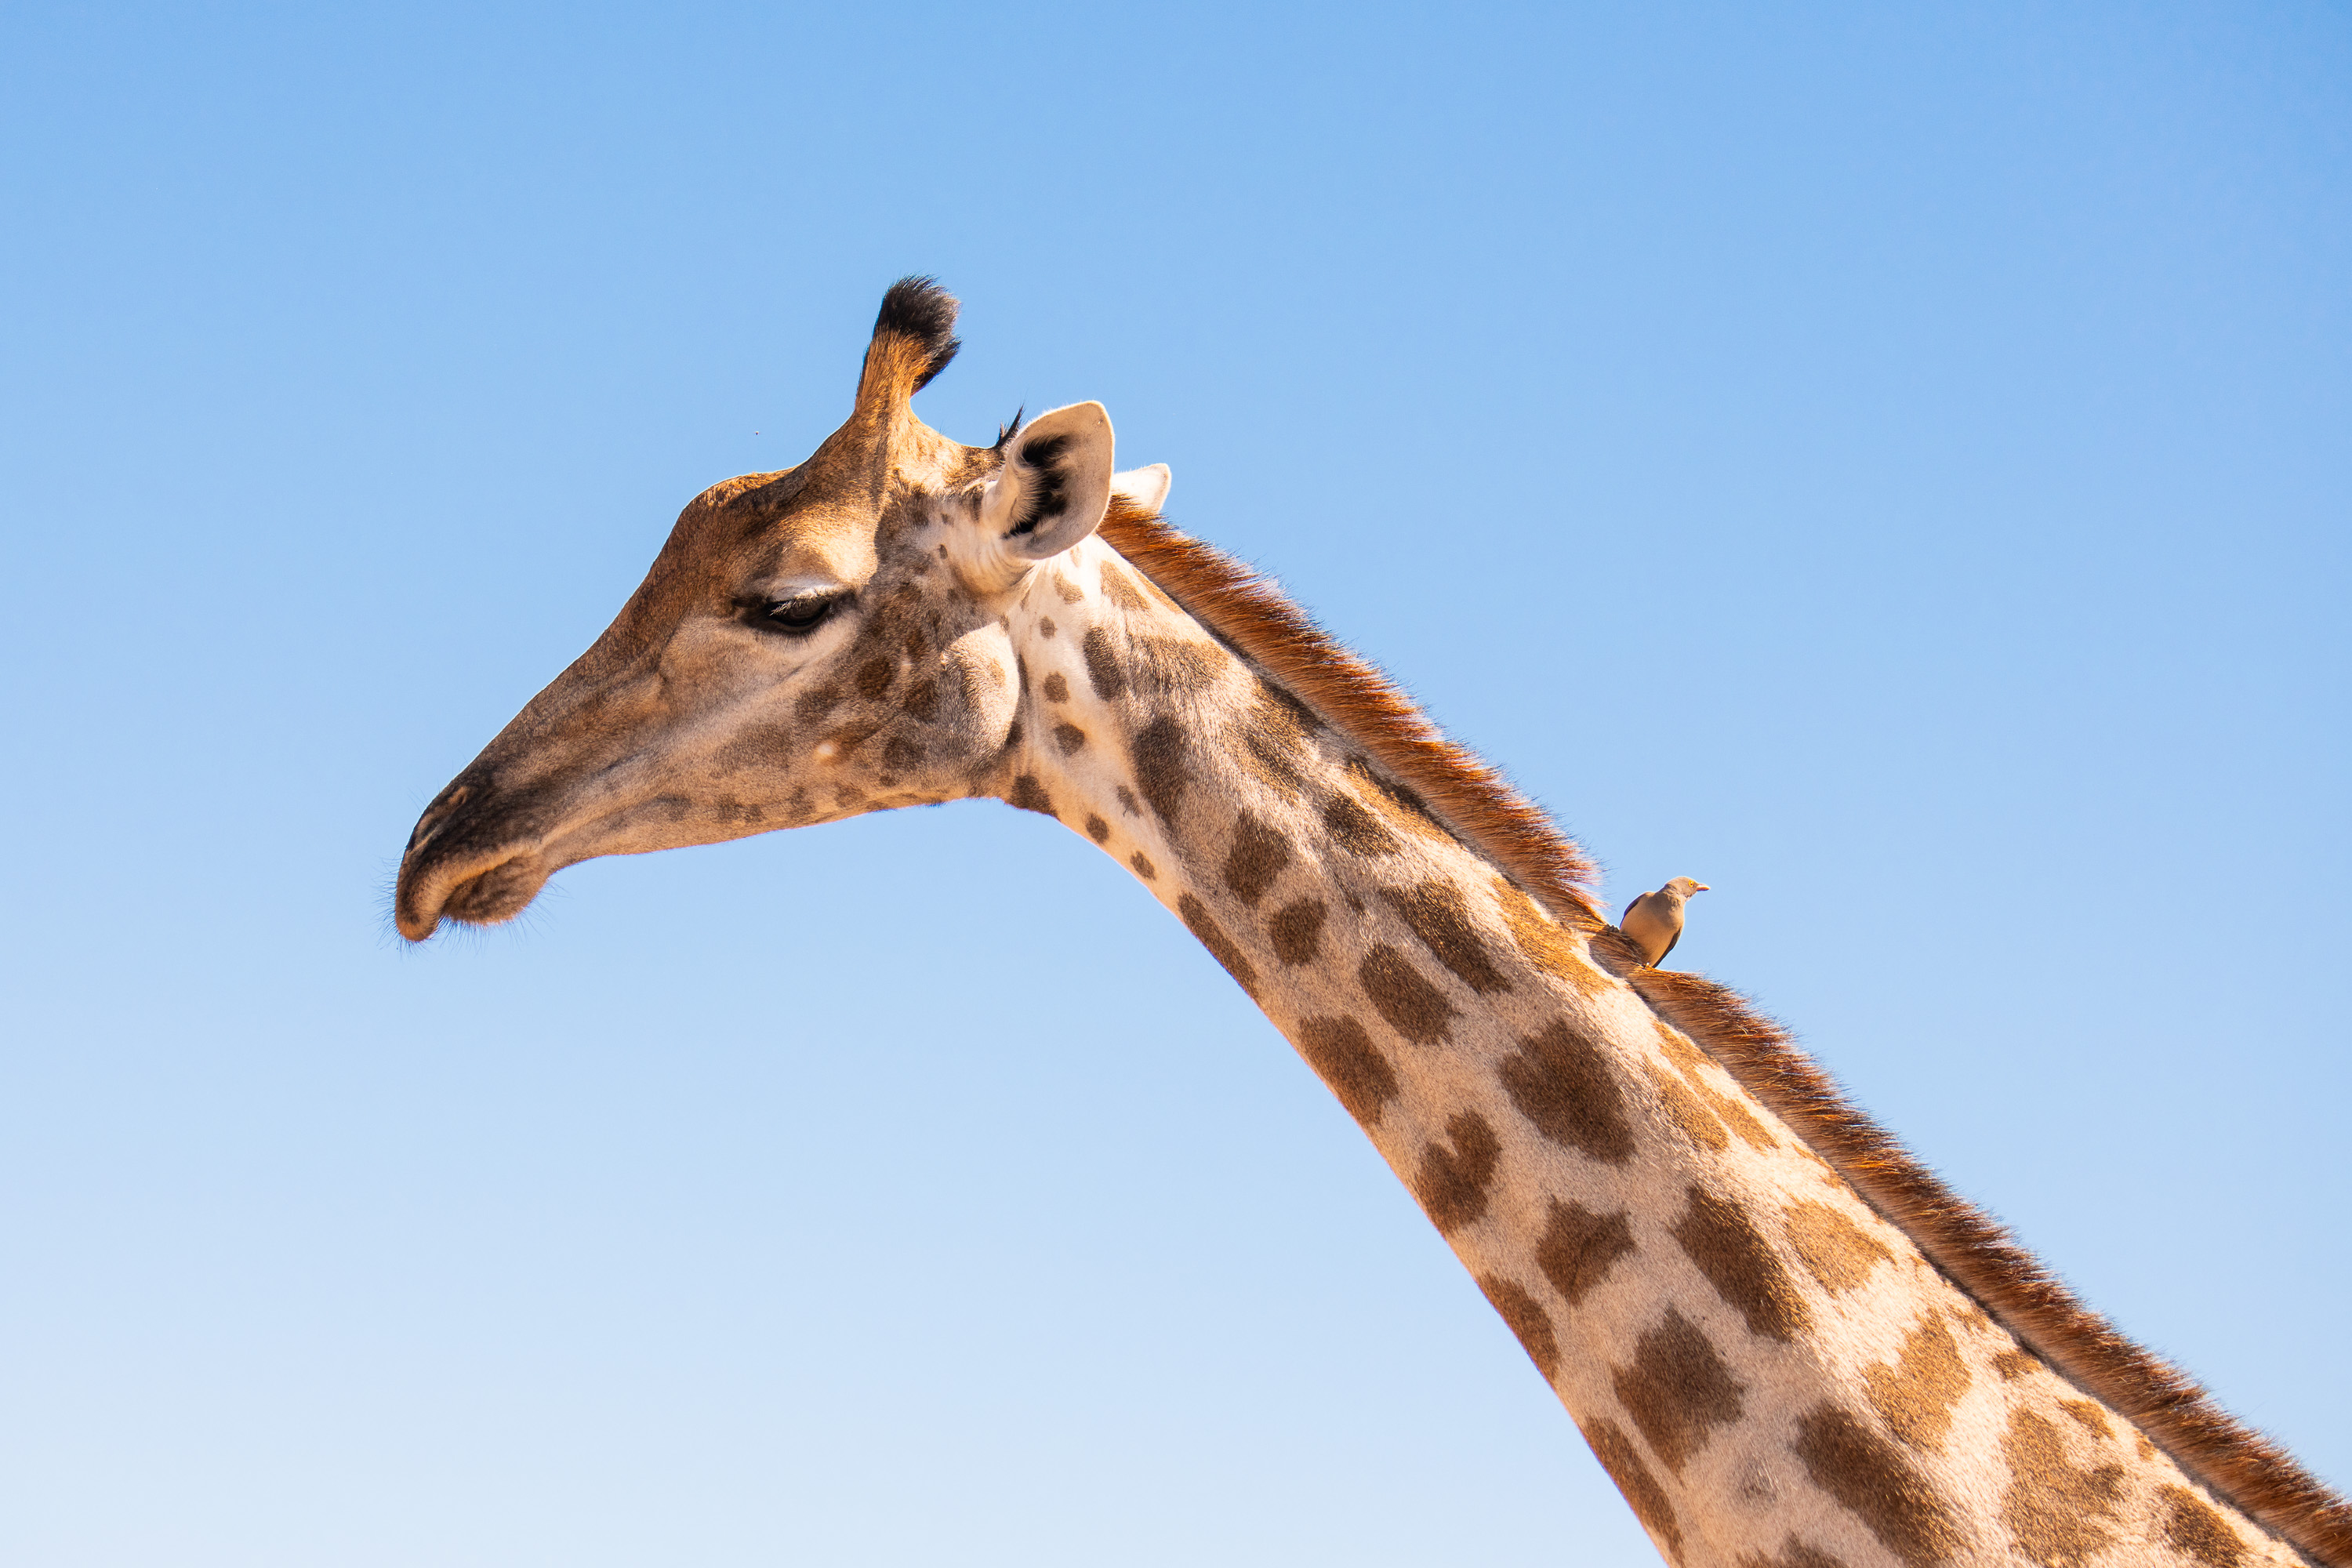 A small bird catches a ride on the neck of a tall giraffe